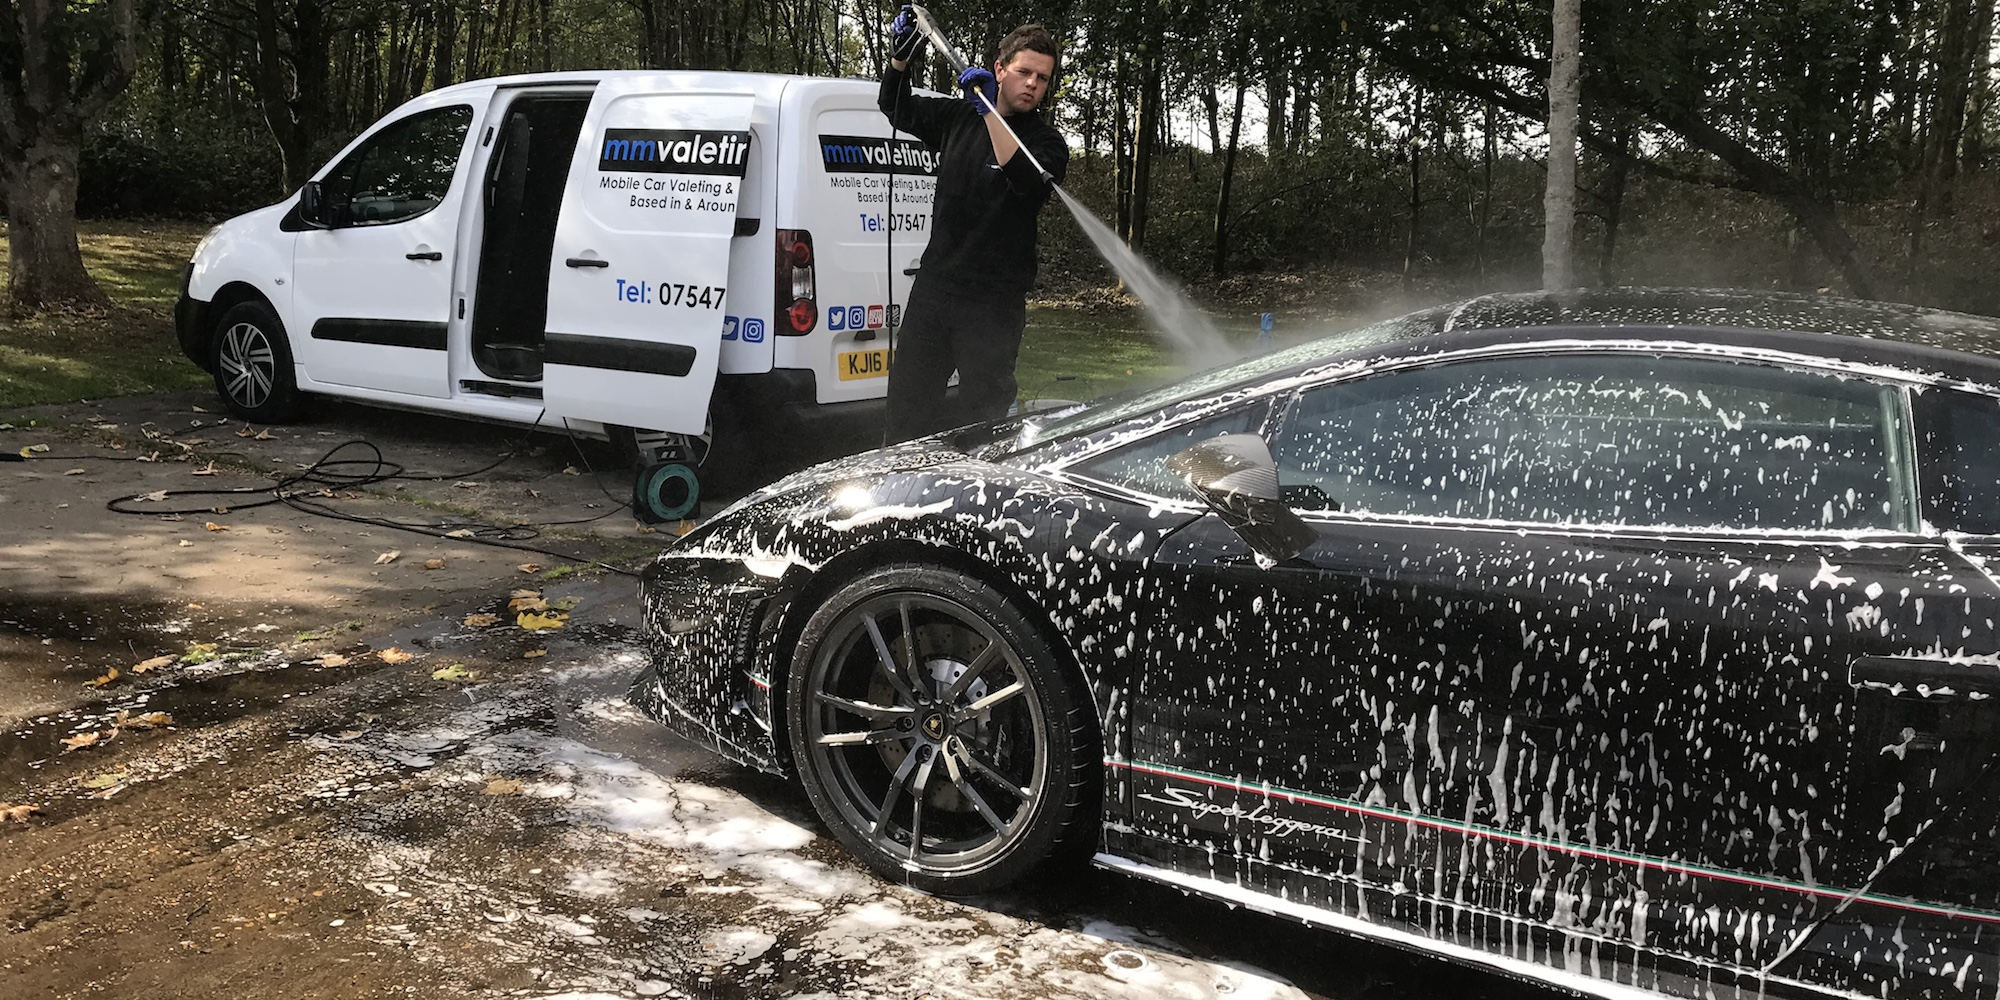 mmvaleting car valeting in Oxfordshire and Buckinghamshire